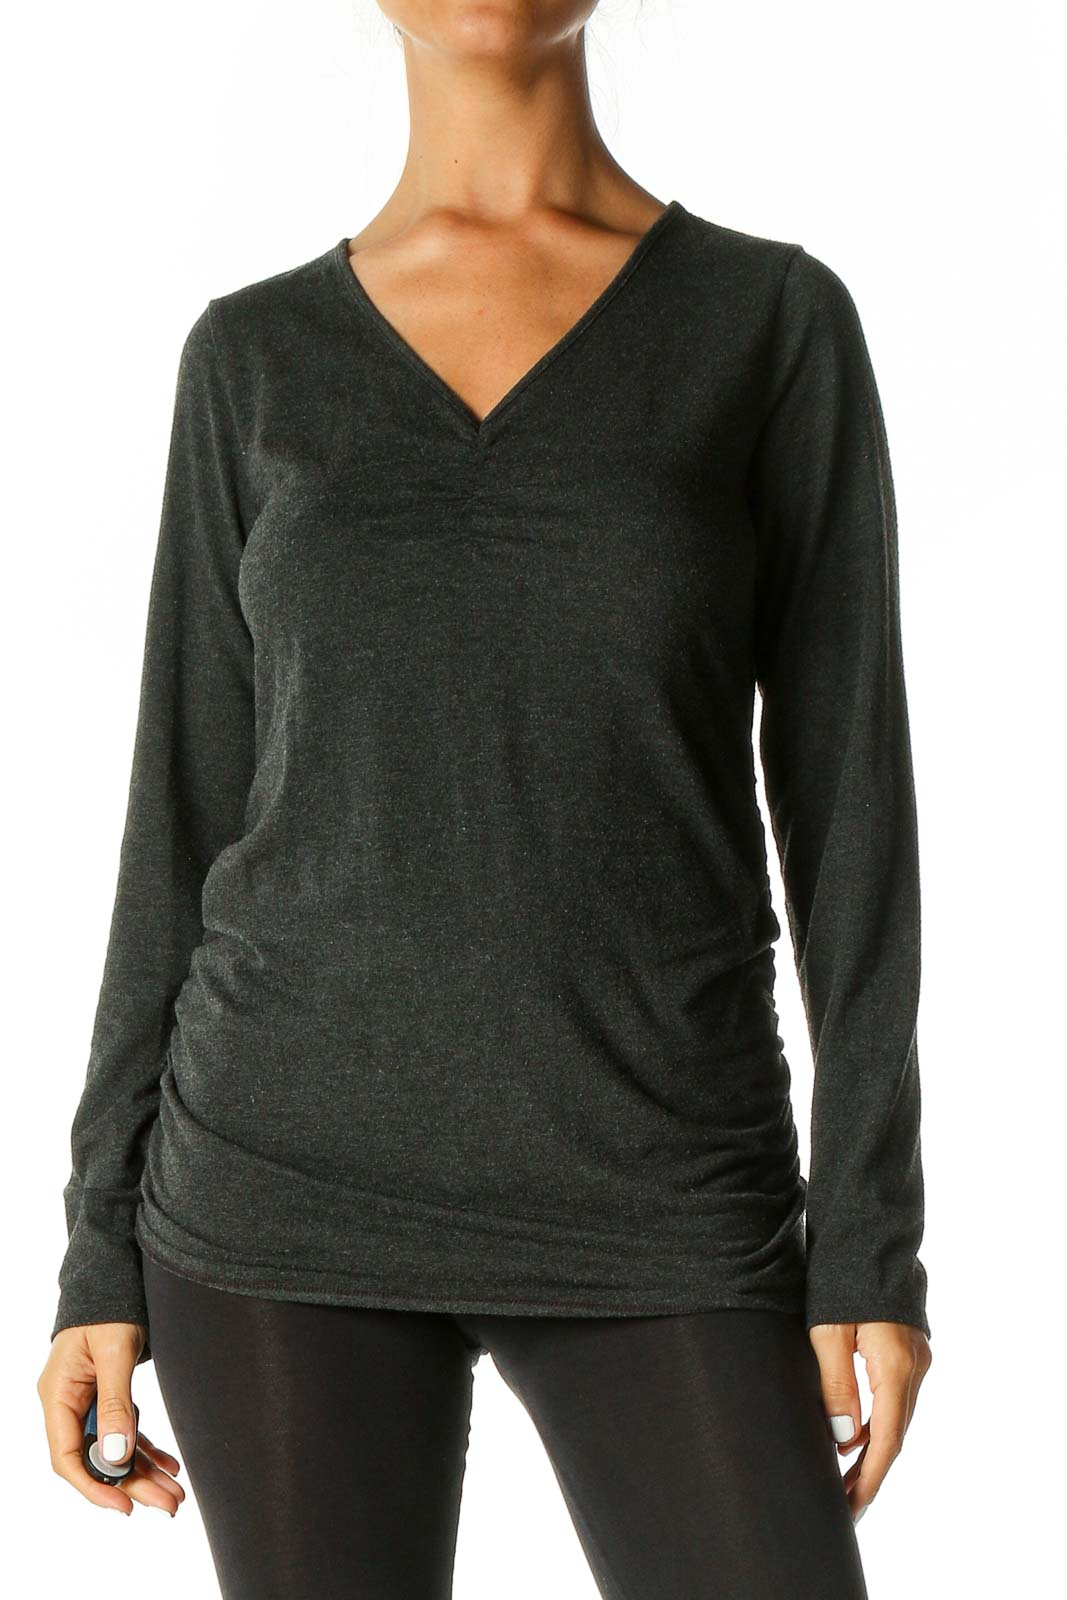 Gray All Day Wear Top Front